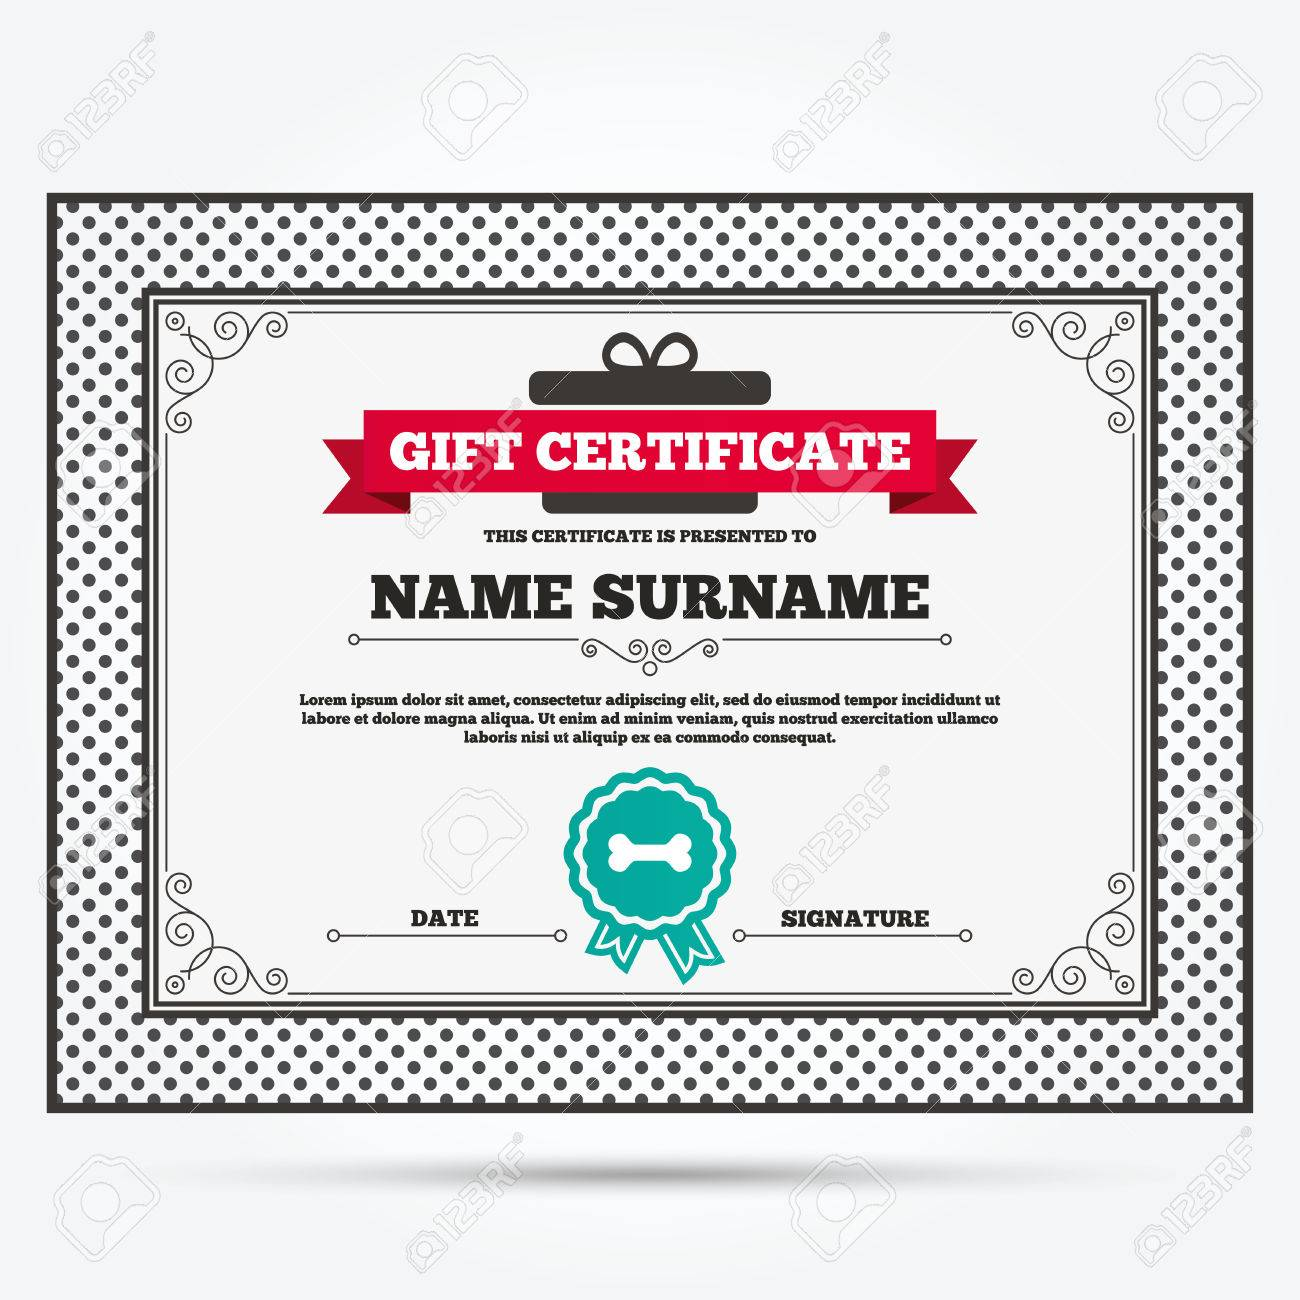 Gift Certificate Dog Bone Sign Icon Pets Food Symbol Template - Dog gift certificate template free